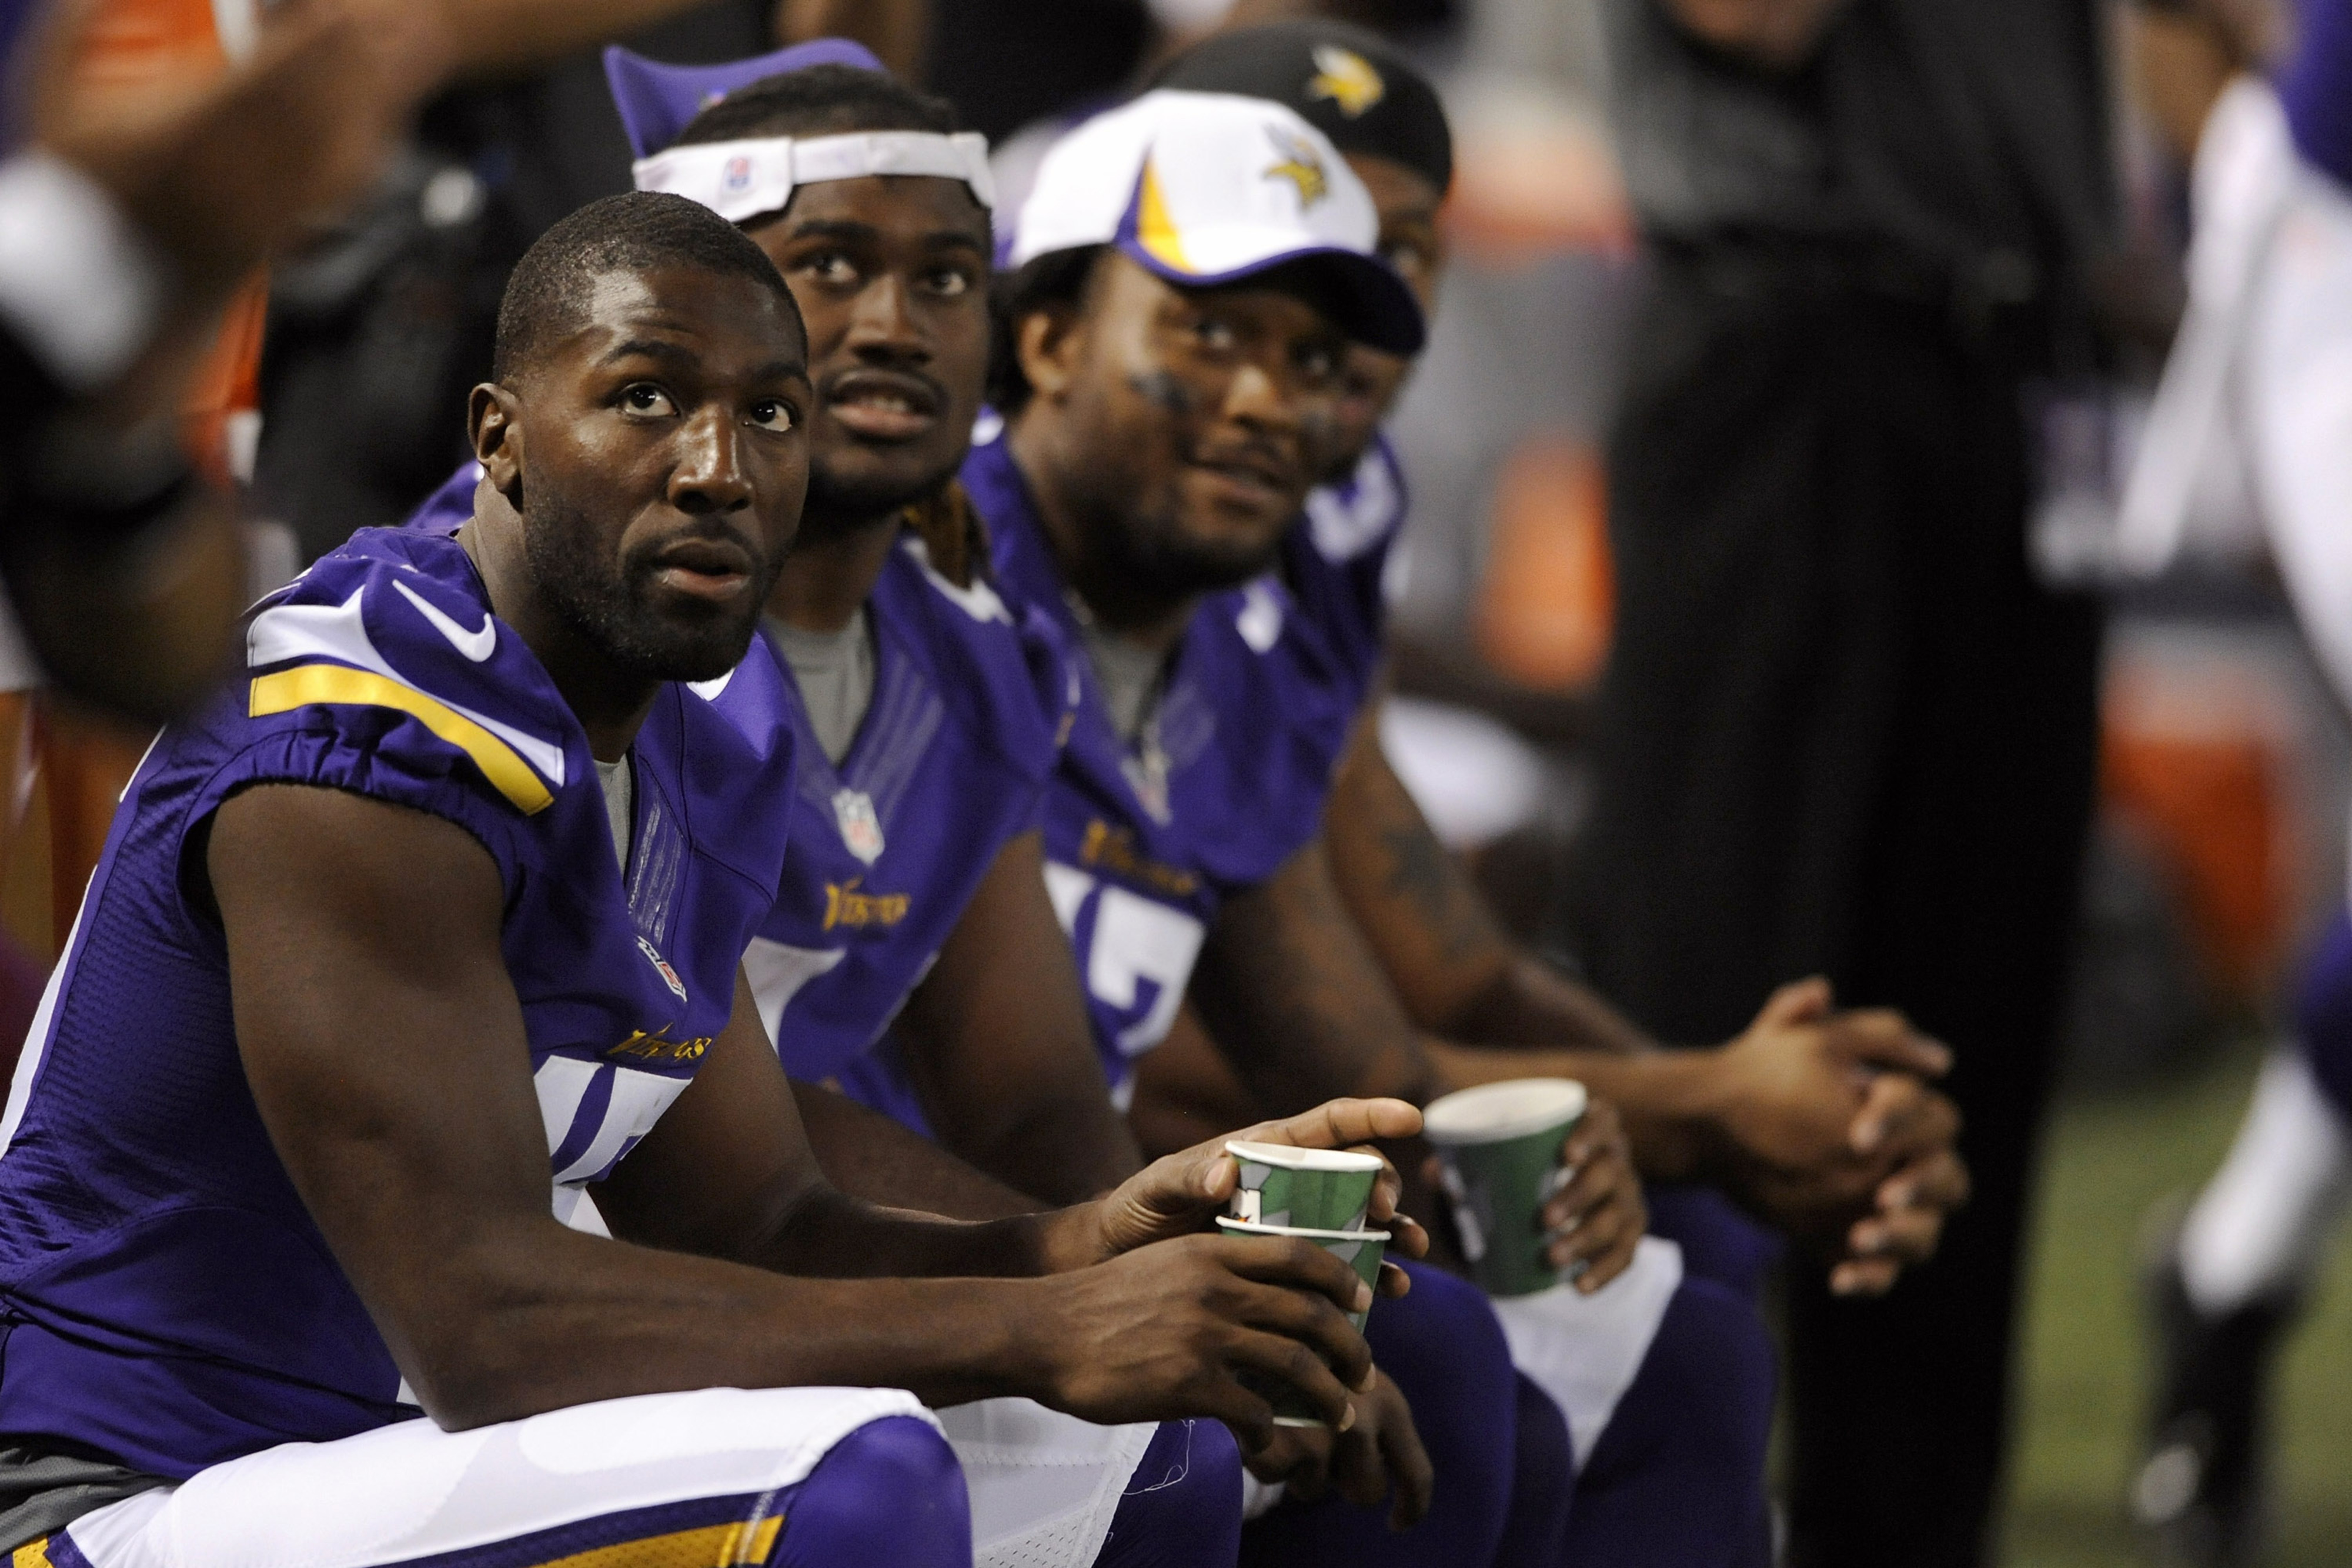 Greg Jennings, Cordarrelle Patterson, and LaMark Brown. One of these three won't be around in a couple weeks. Guess who?